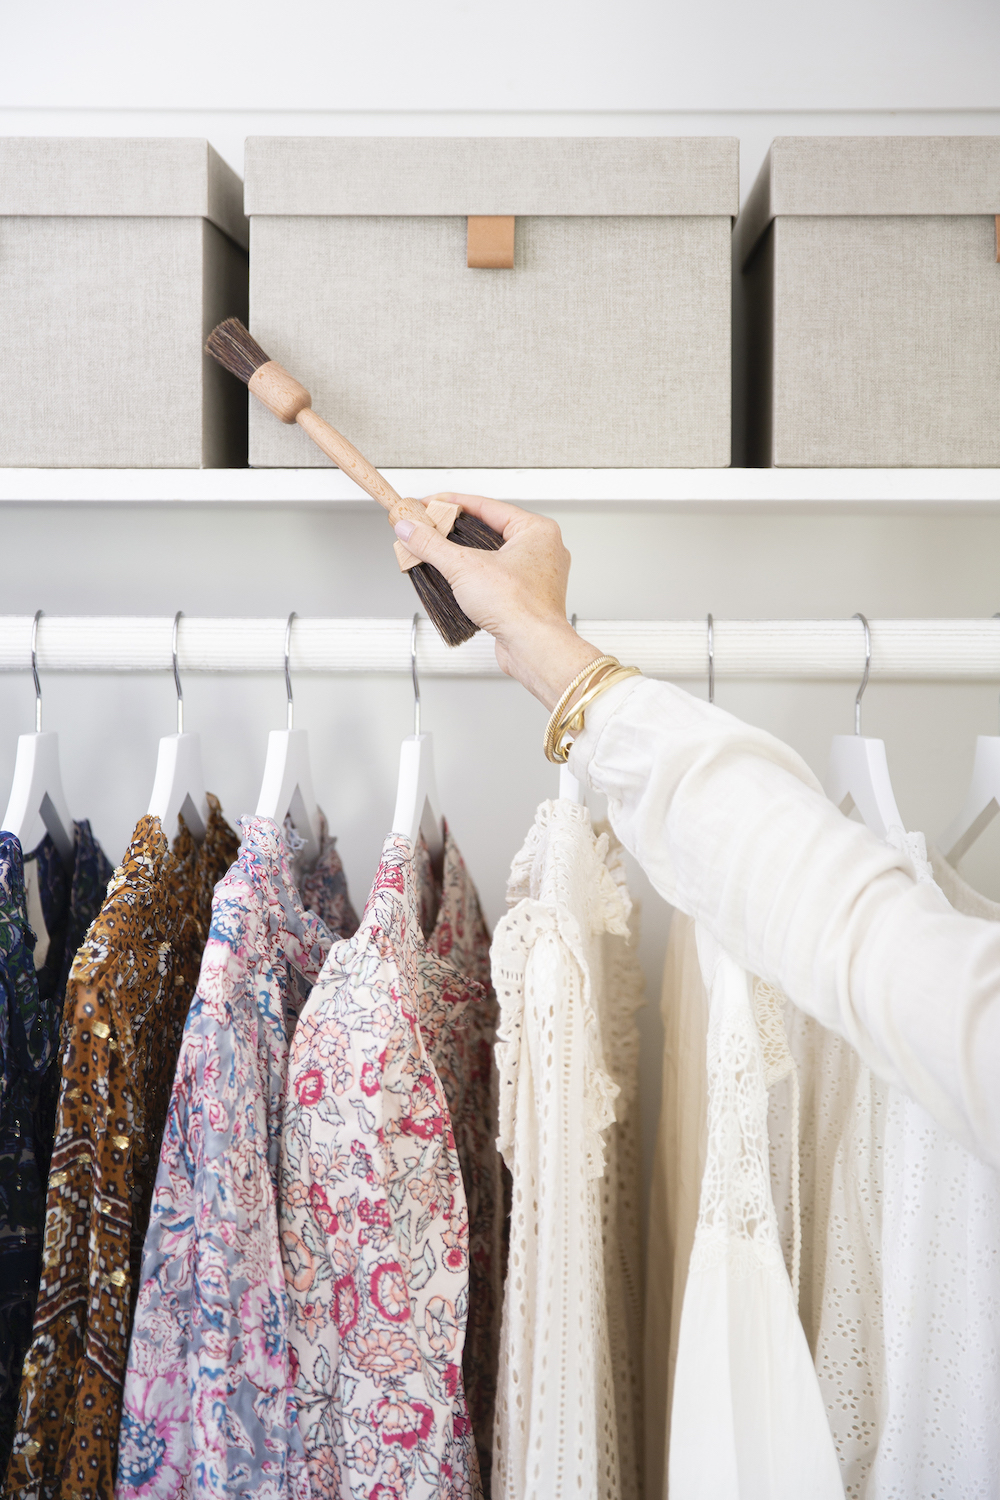 Take a few minutes to give a quick clean and wipe down your closet shelves